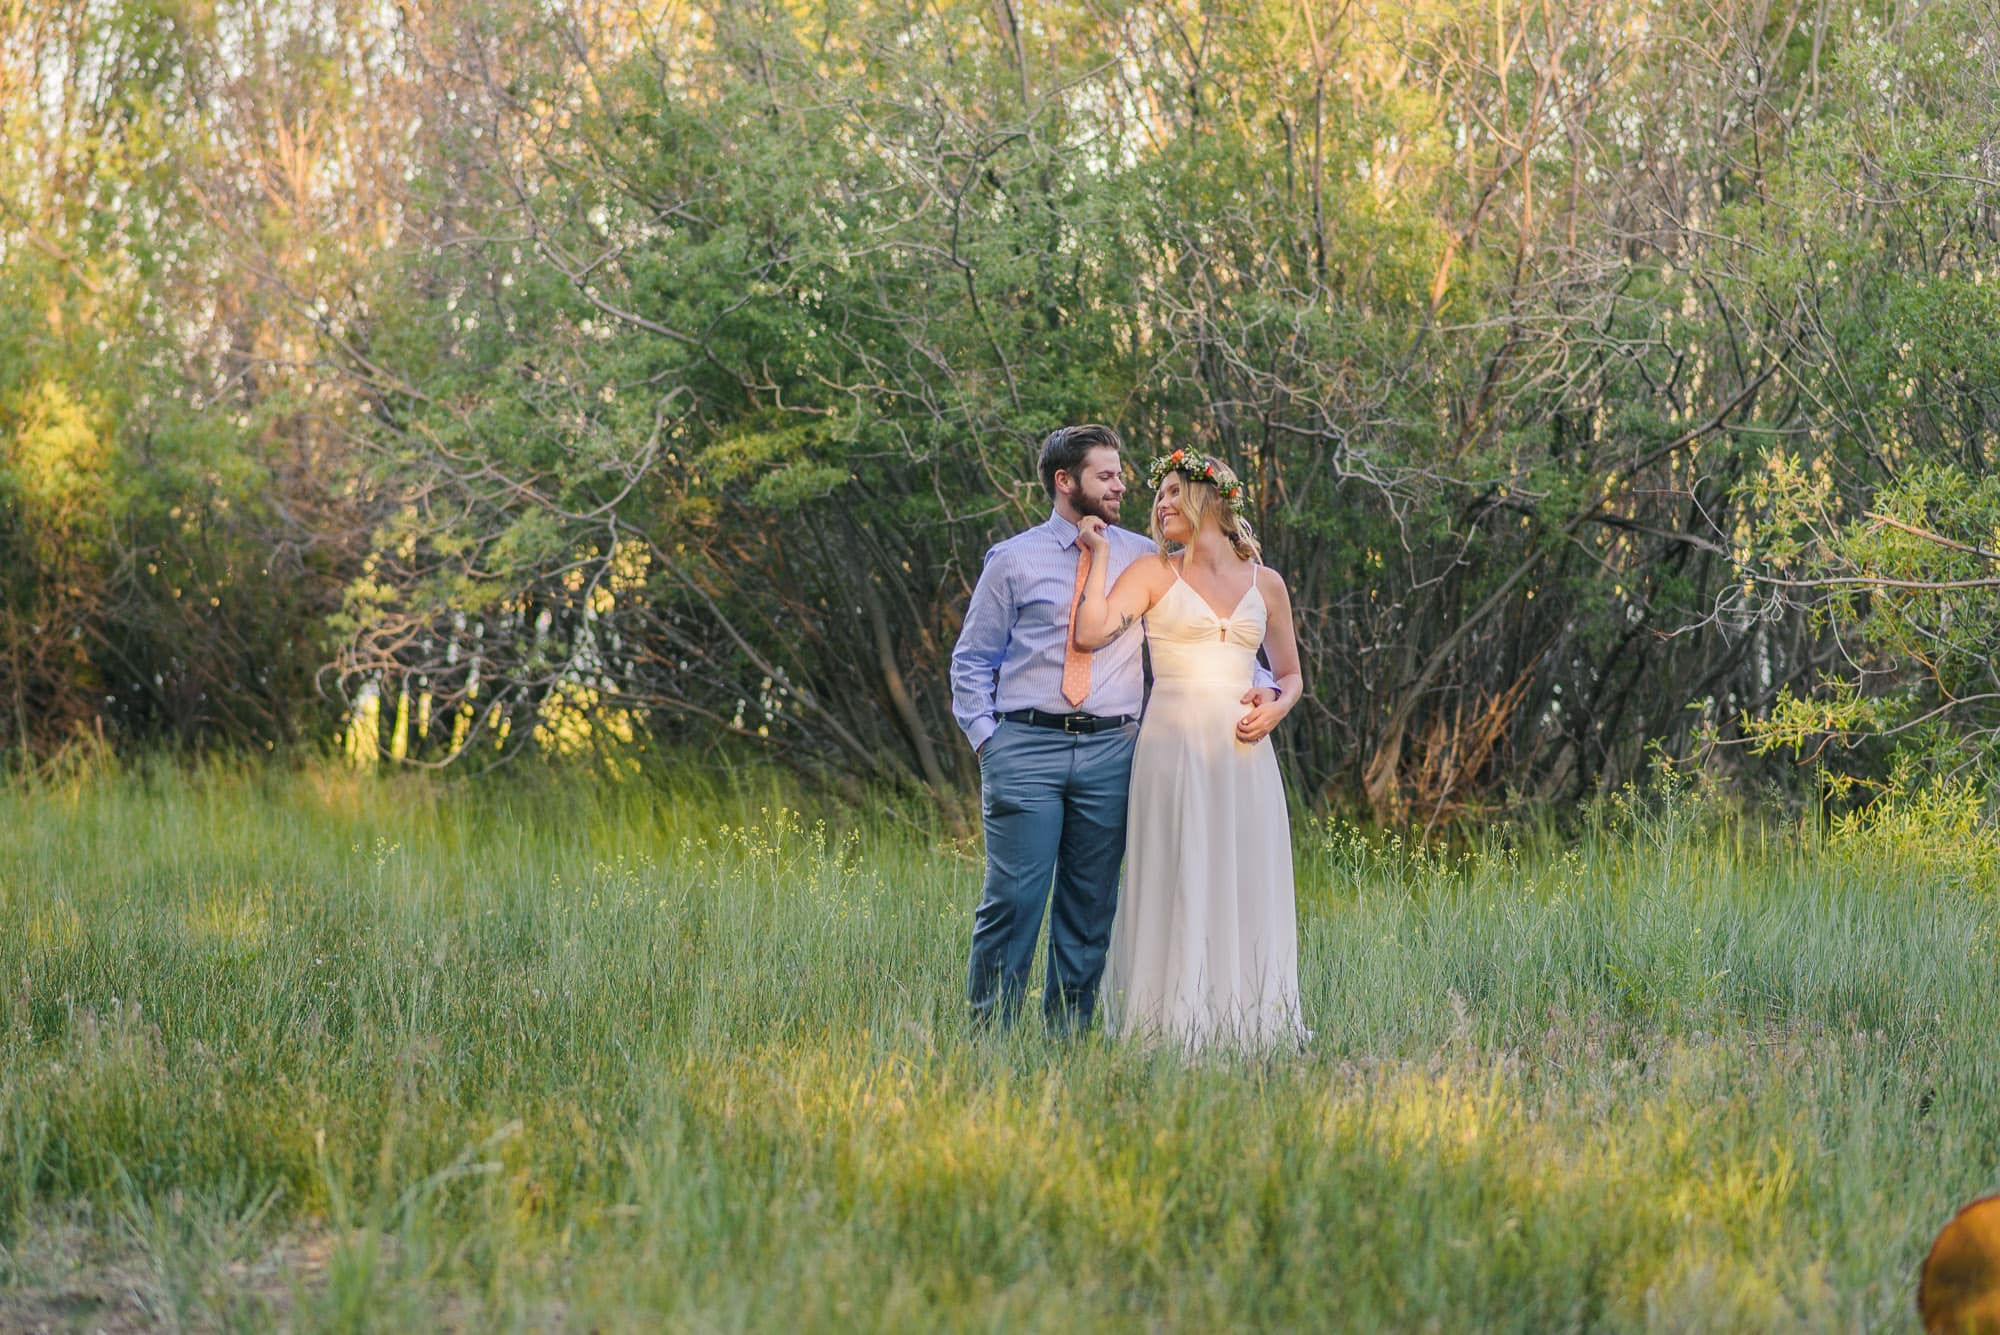 011_Alan_and_Heidi_Kensey_Josh_Big_Bear_Elopement